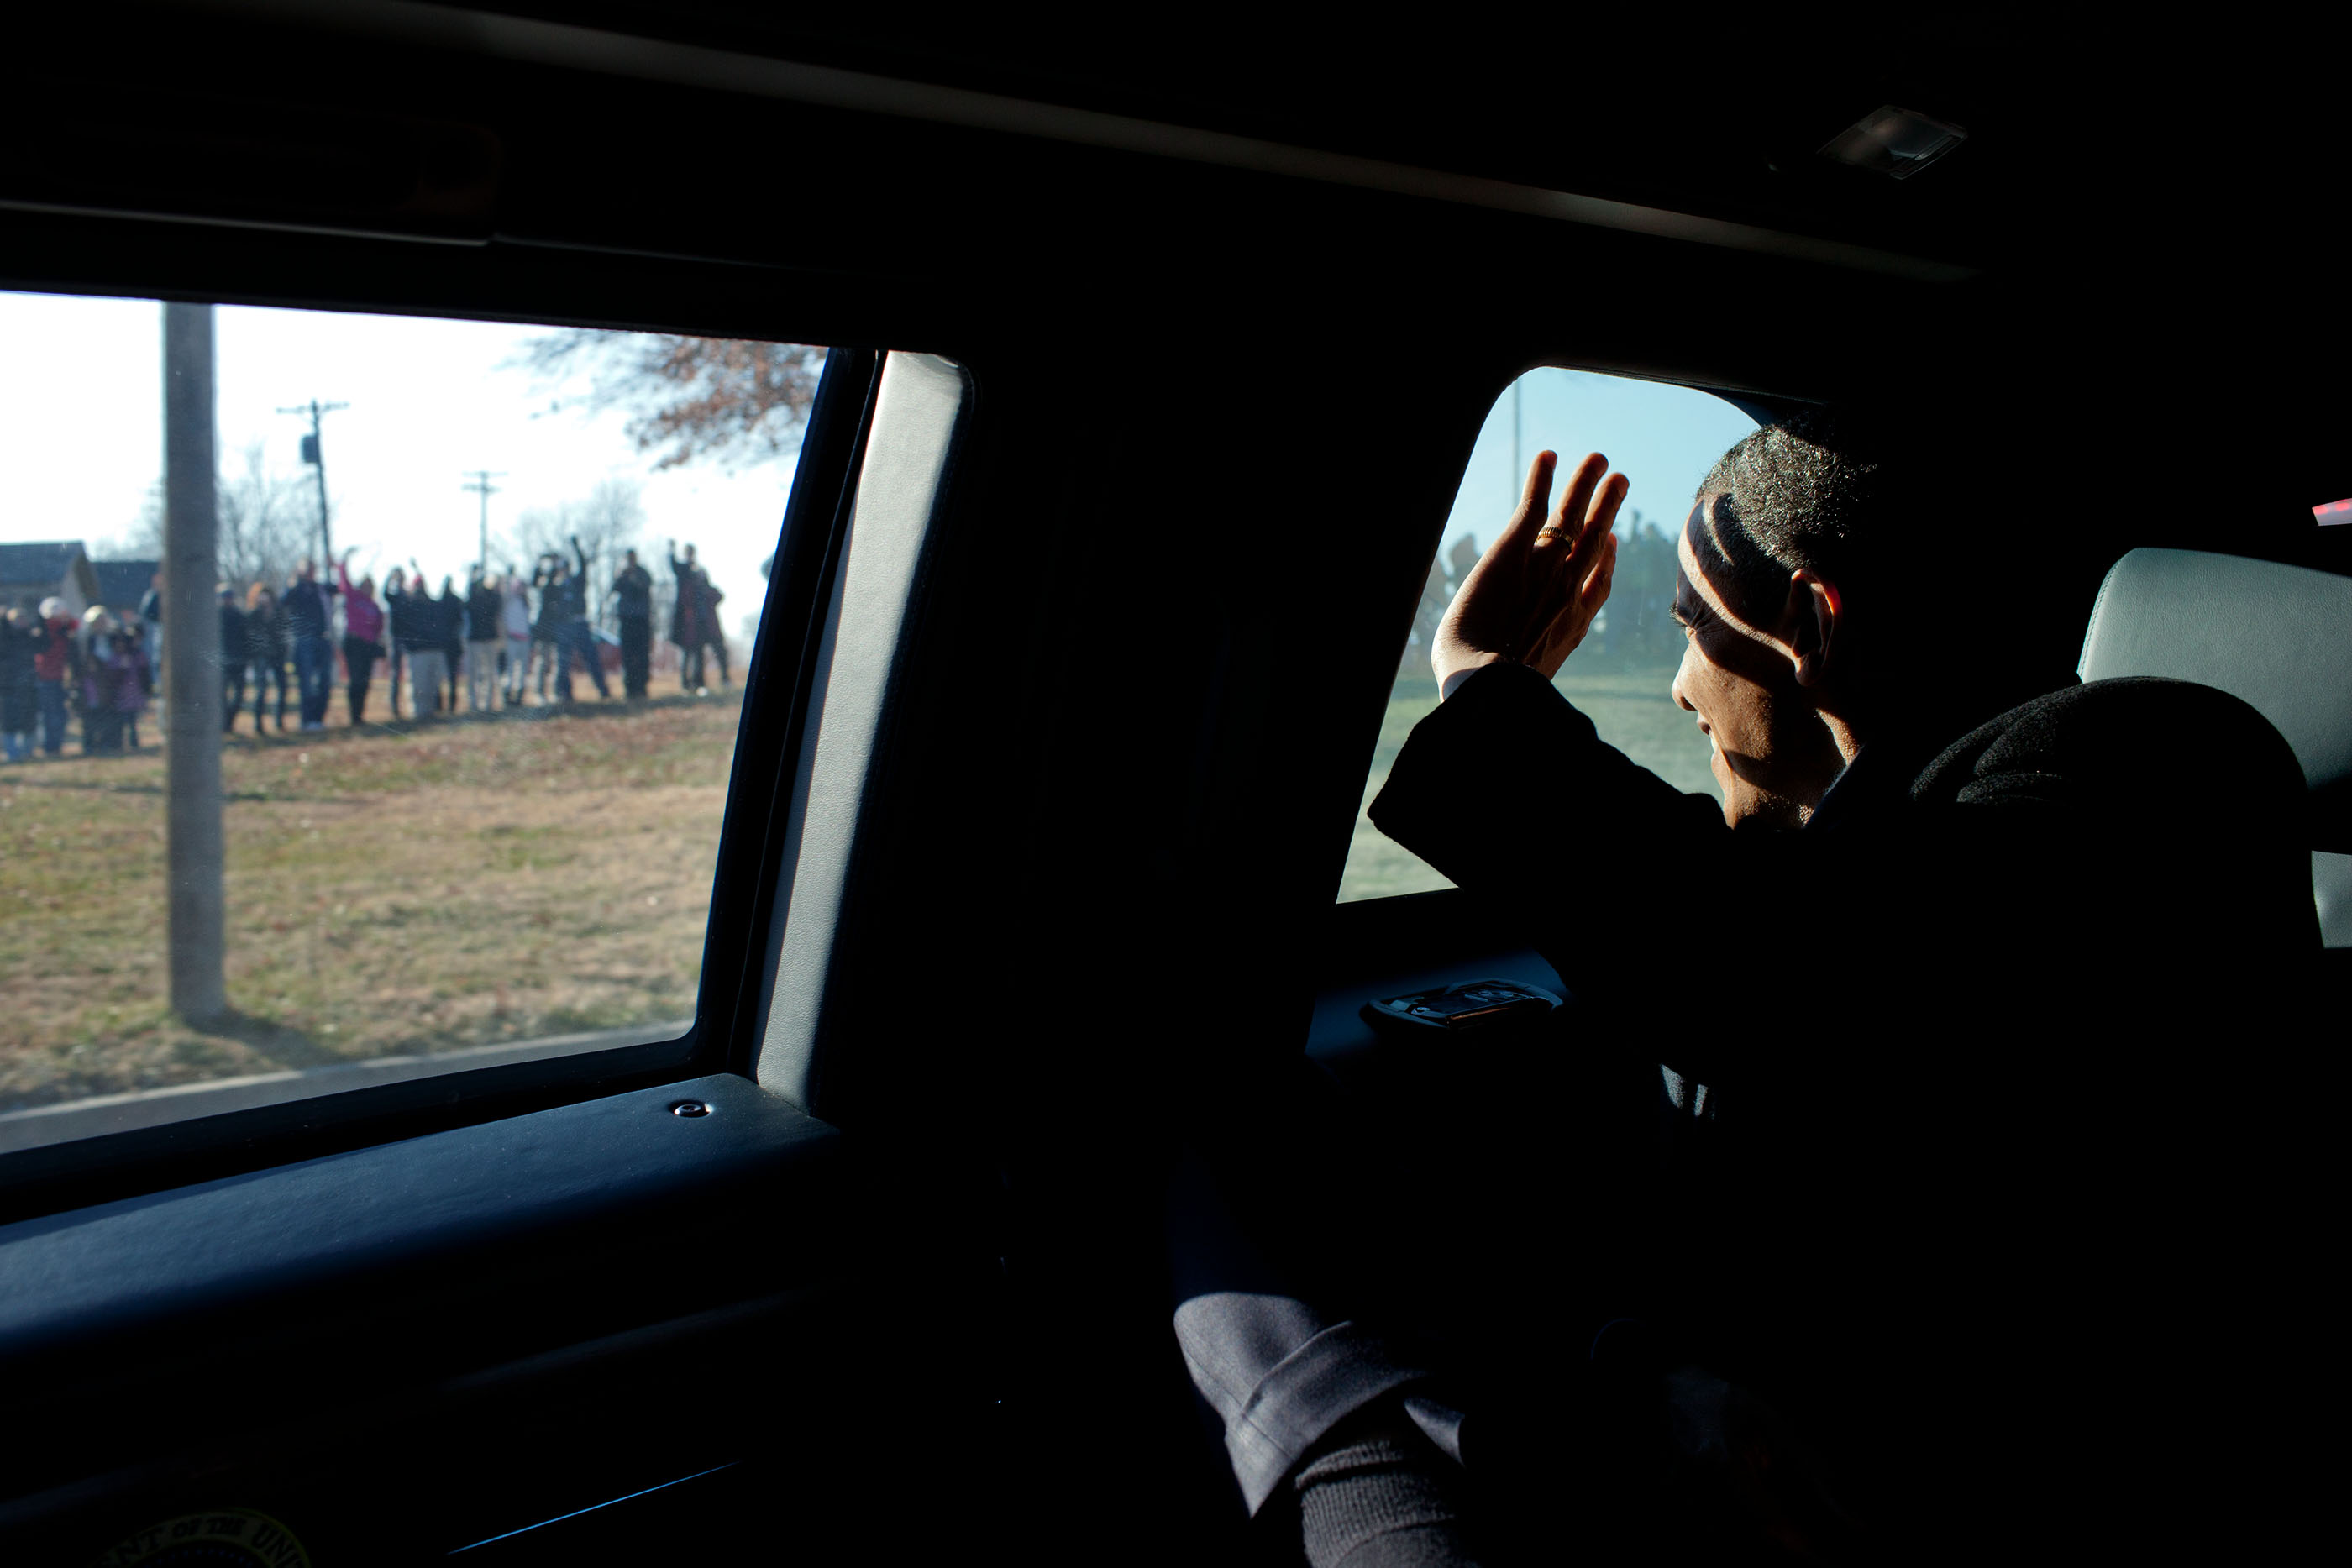 Kansas, Dec. 6, 2011. Waving to Kansans after his economic speech in Osawatomie. (Official White House Photo by Pete Souza)